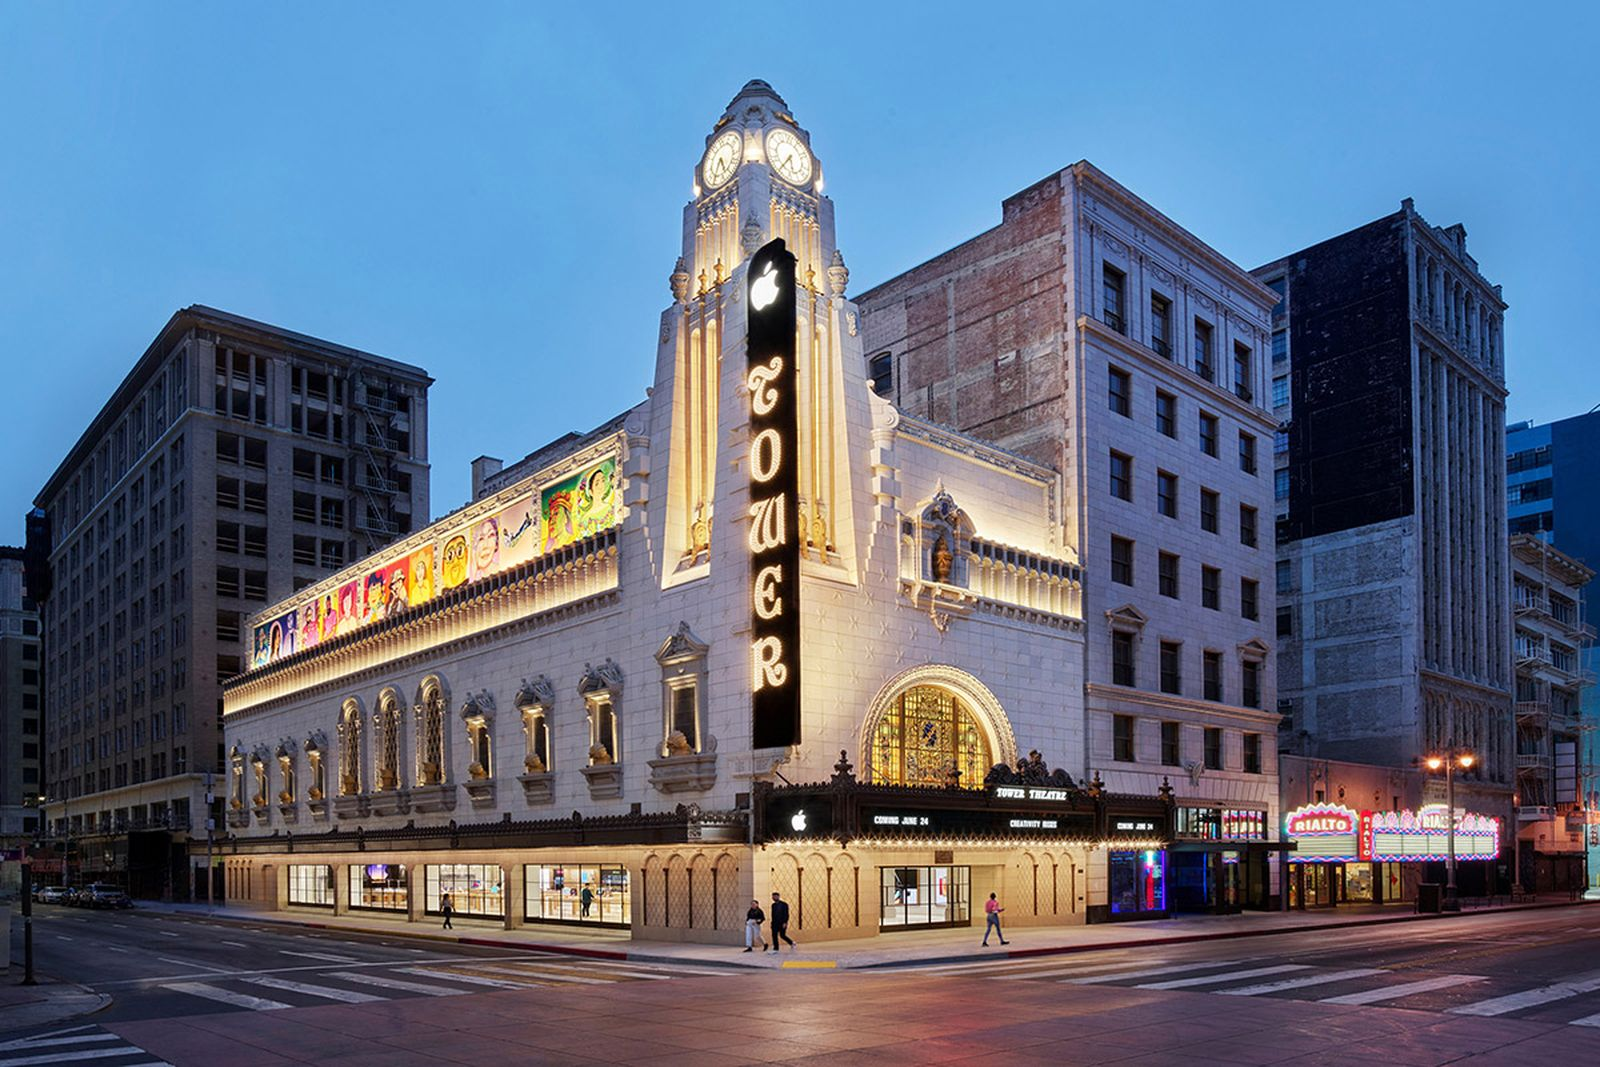 apple-store-tower-theatre-los-angeles-01